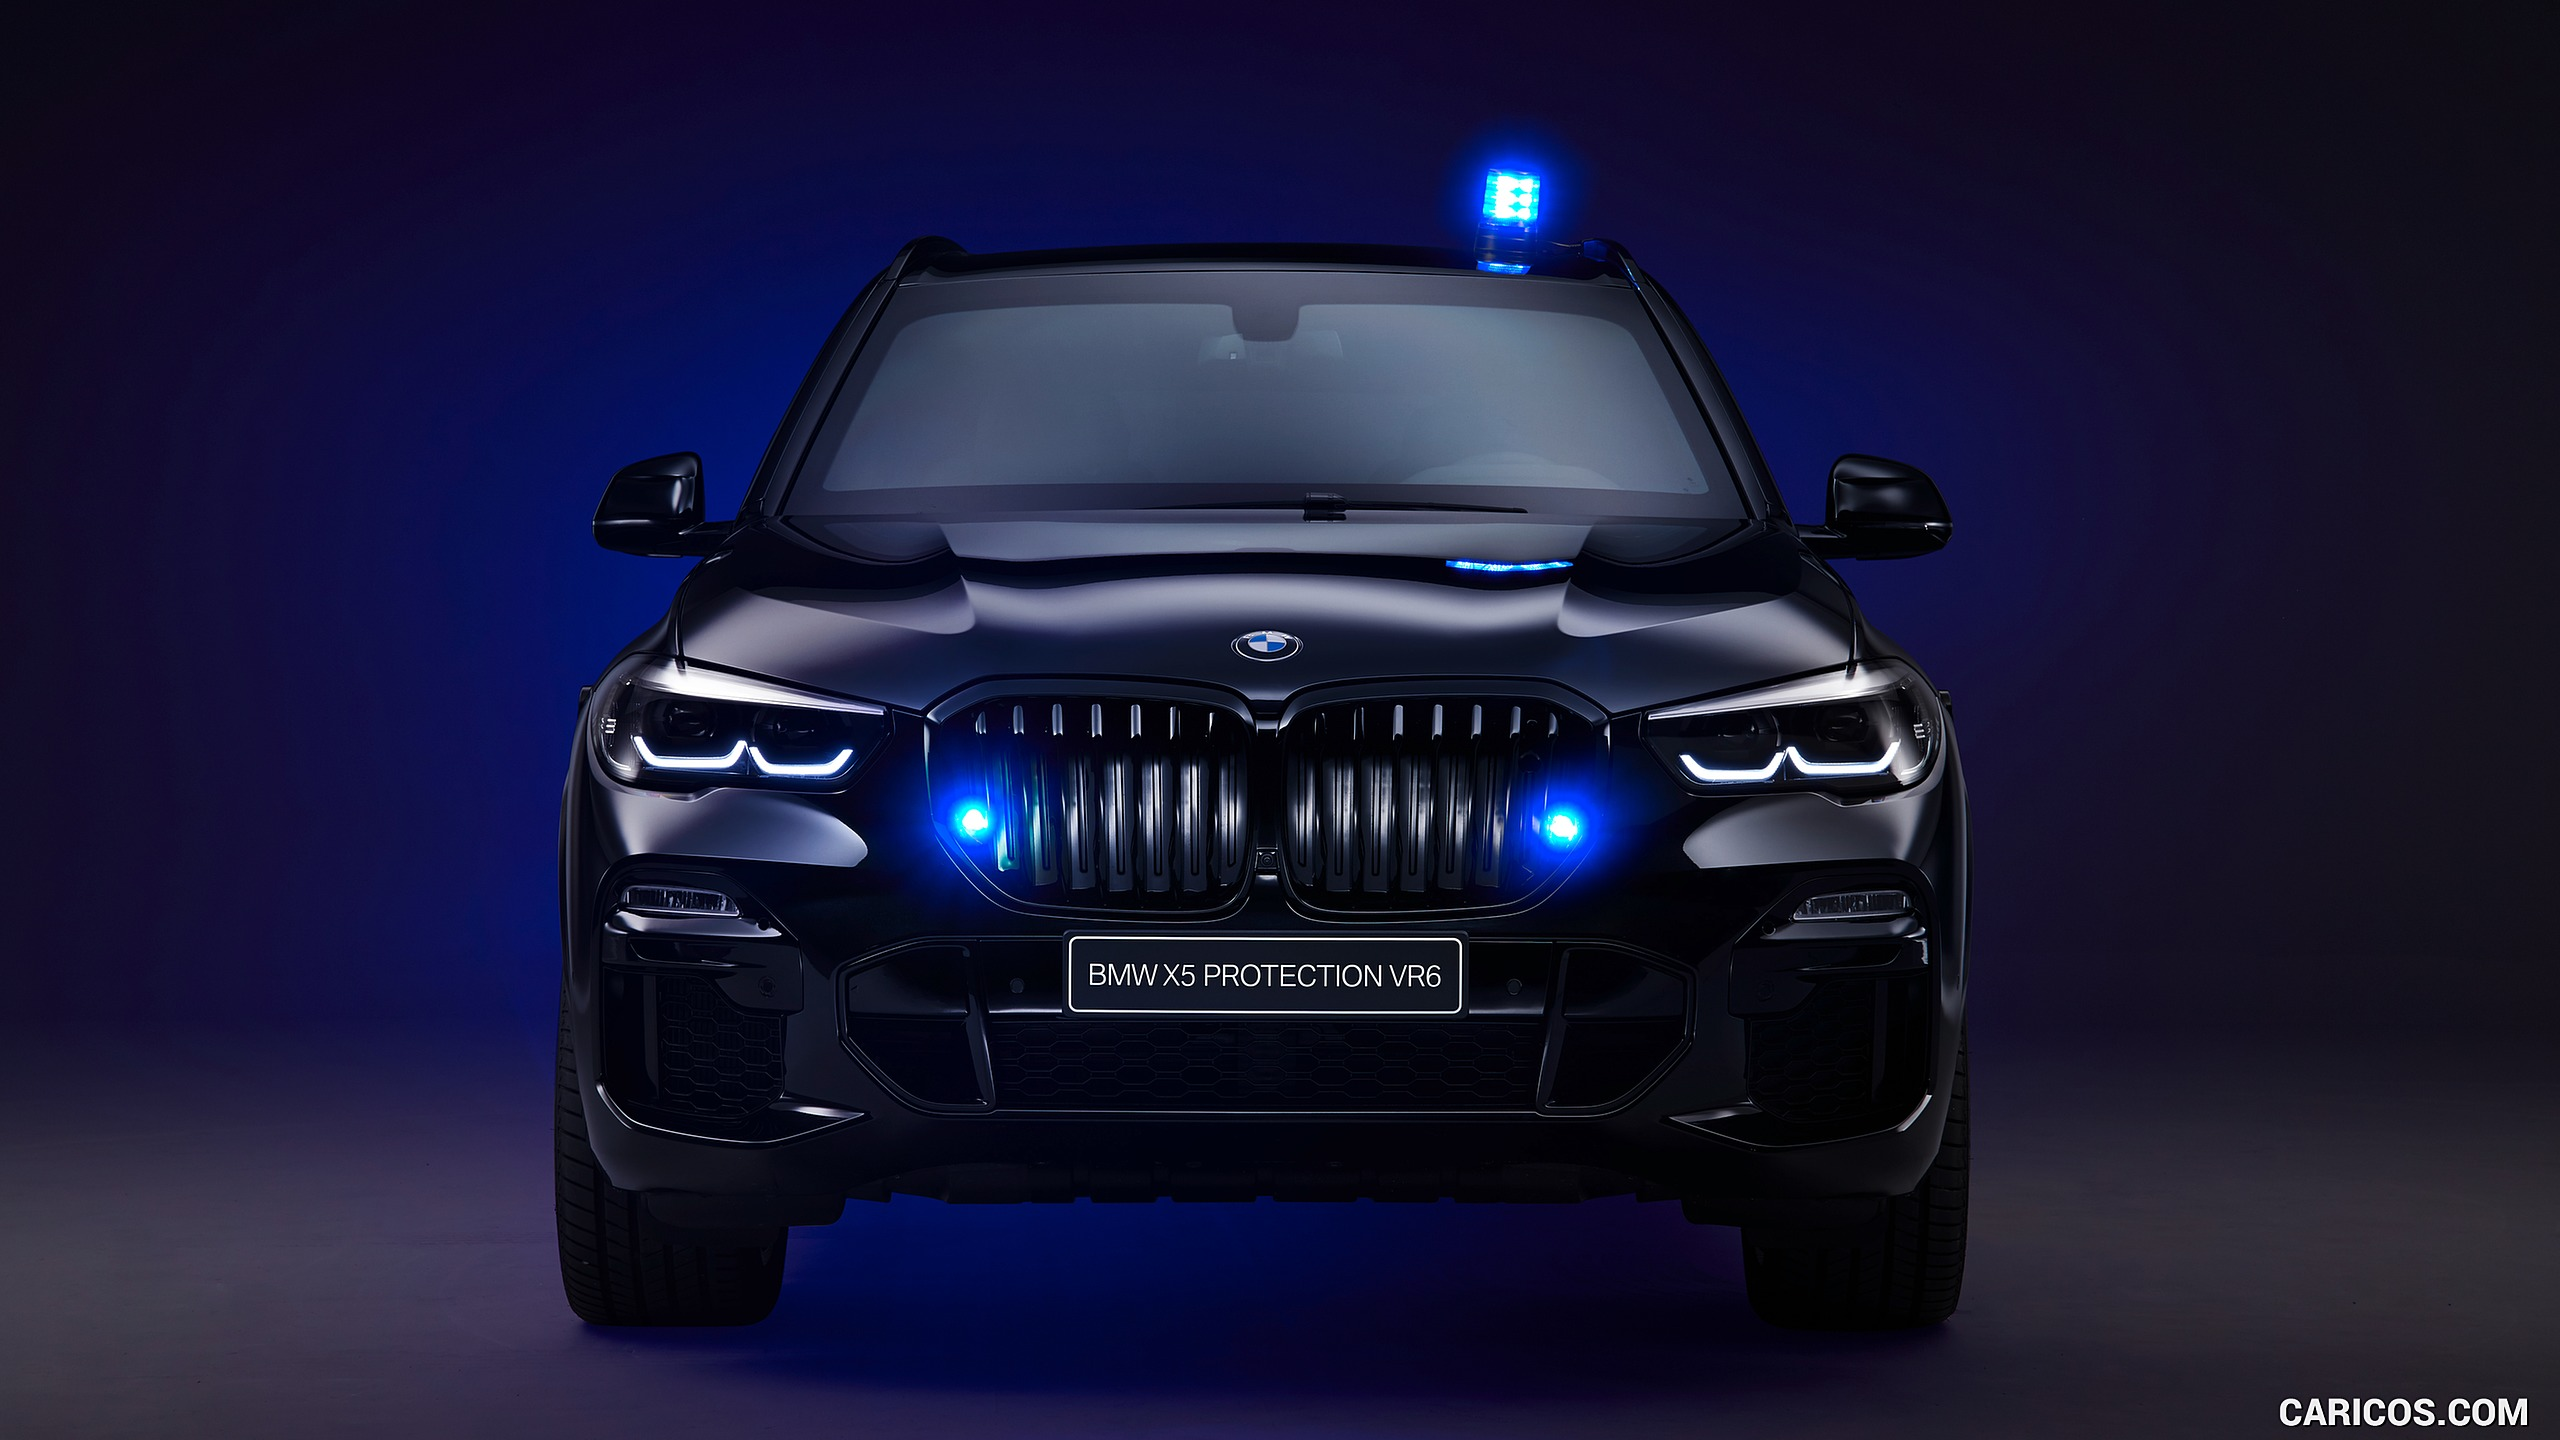 2020 BMW X5 Protection VR6 Armored Vehicle   Front HD 2560x1440